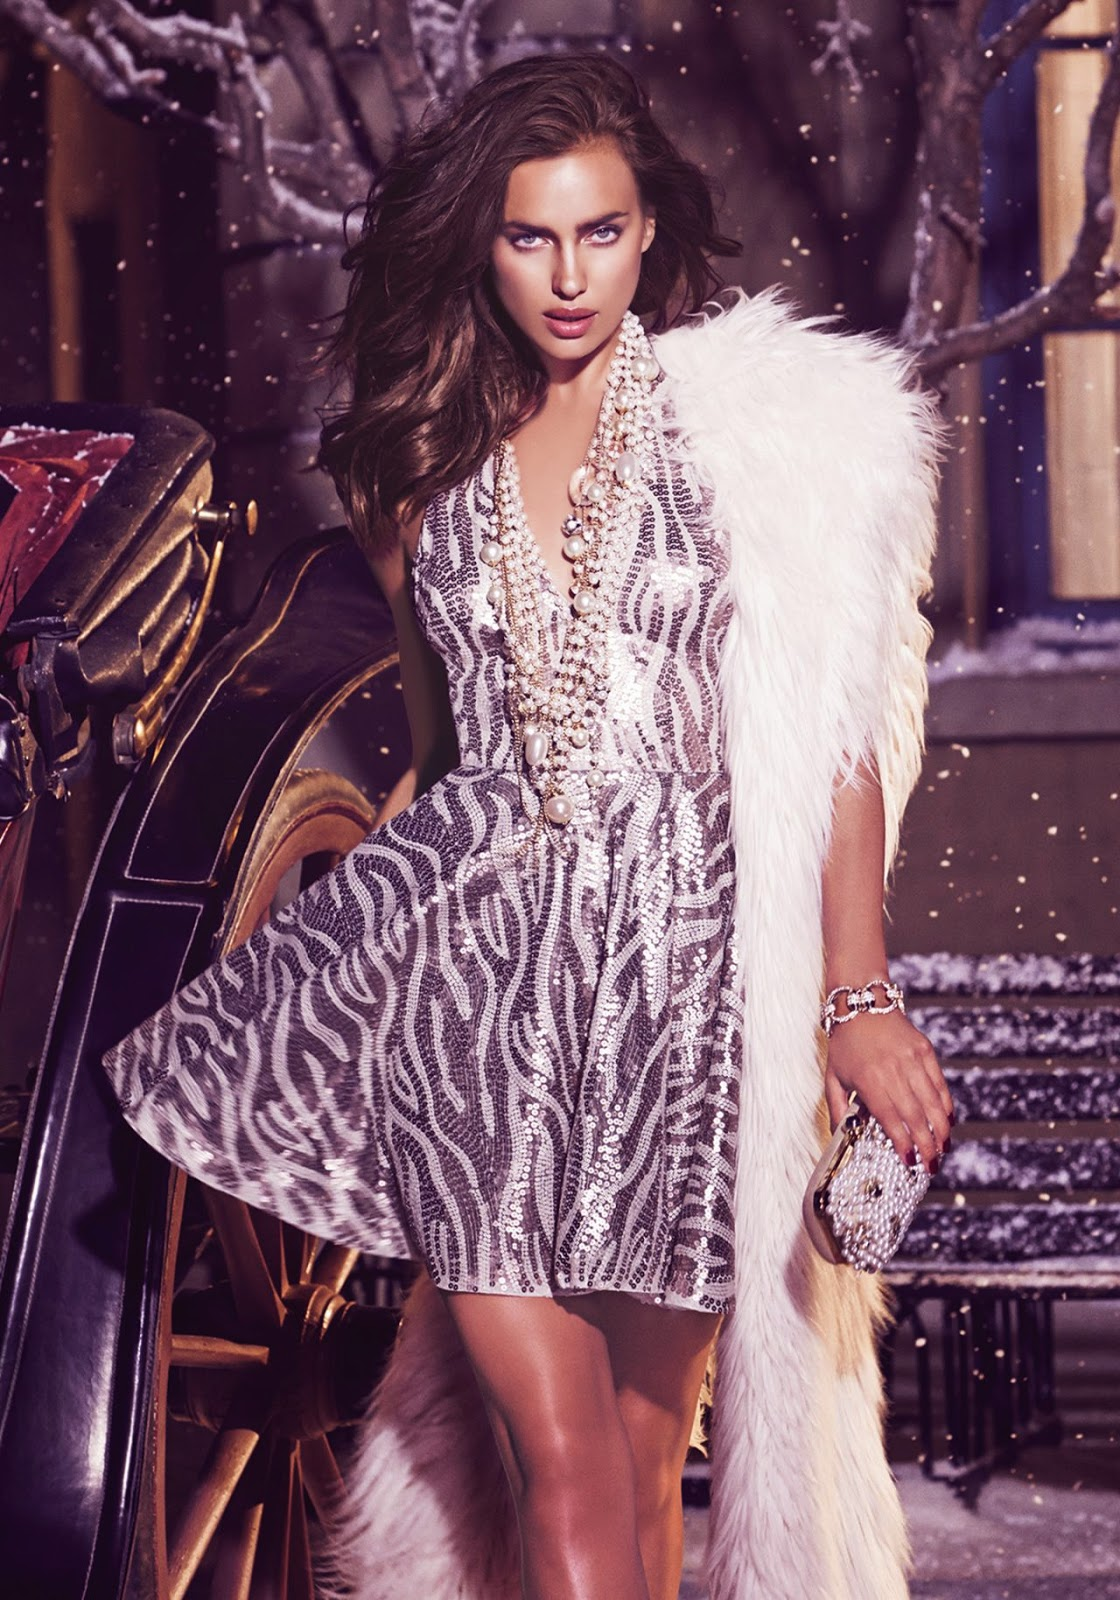 Bebe 'Winter in Wonderland' Holiday 2014 Lookbook featuring Irina Shayk